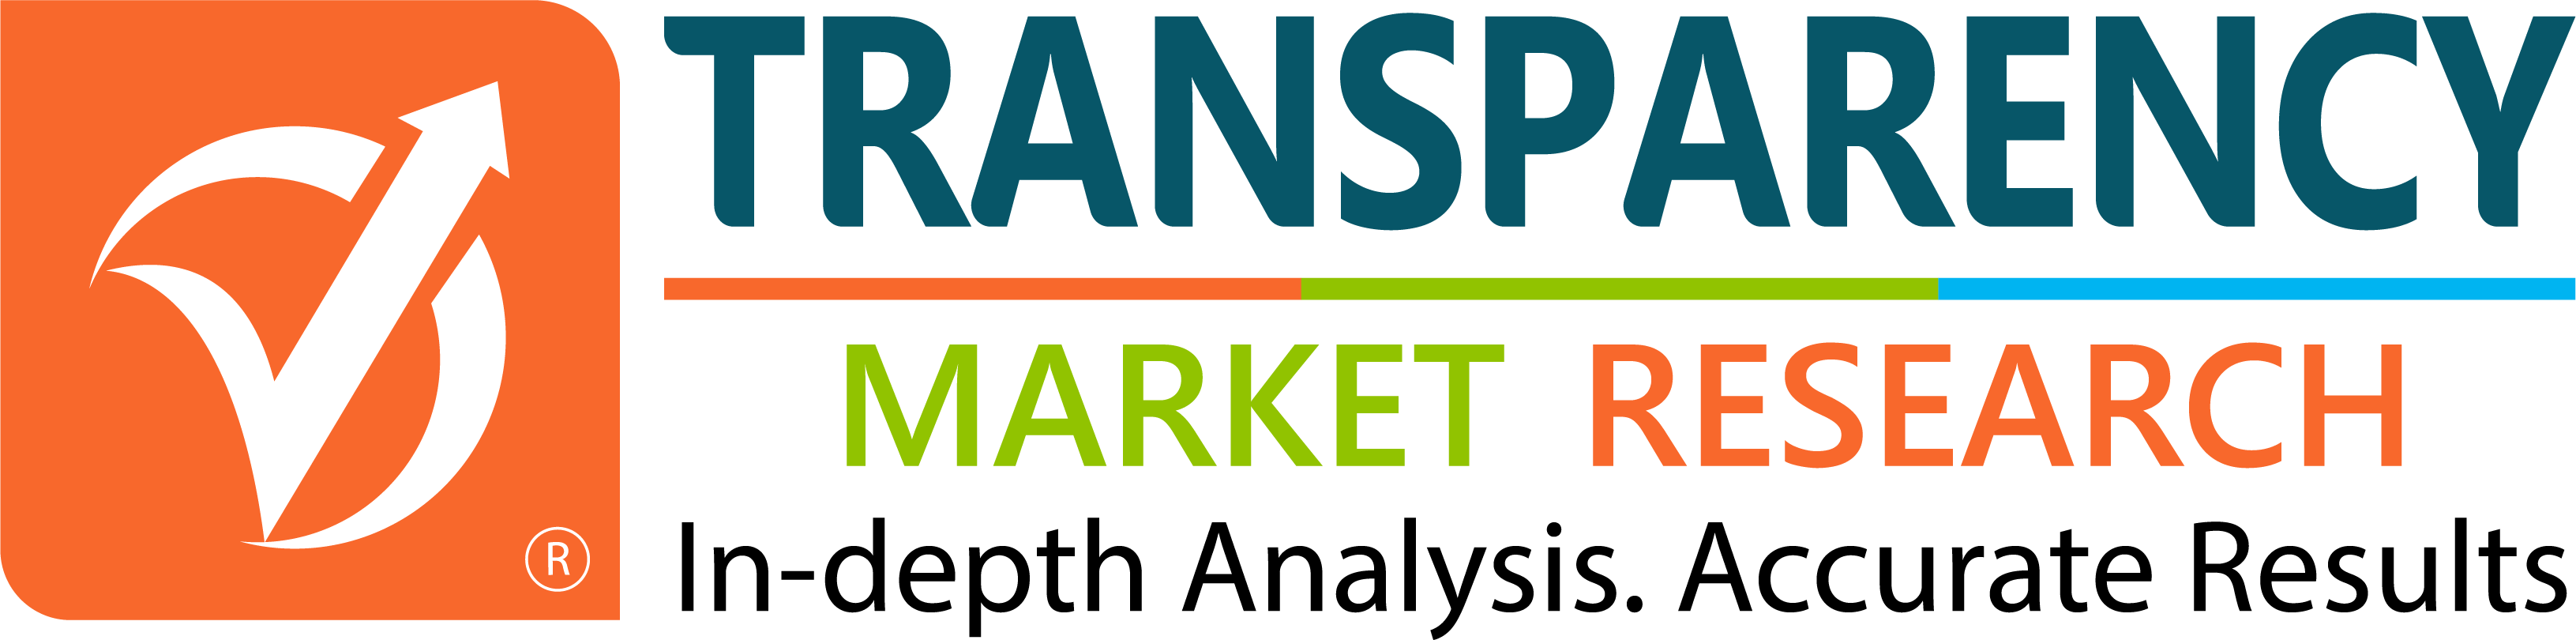 COVID-19 Impact Analysis on the Medical Waste Management Market Key Drivers and Opportunities, 2017-2025